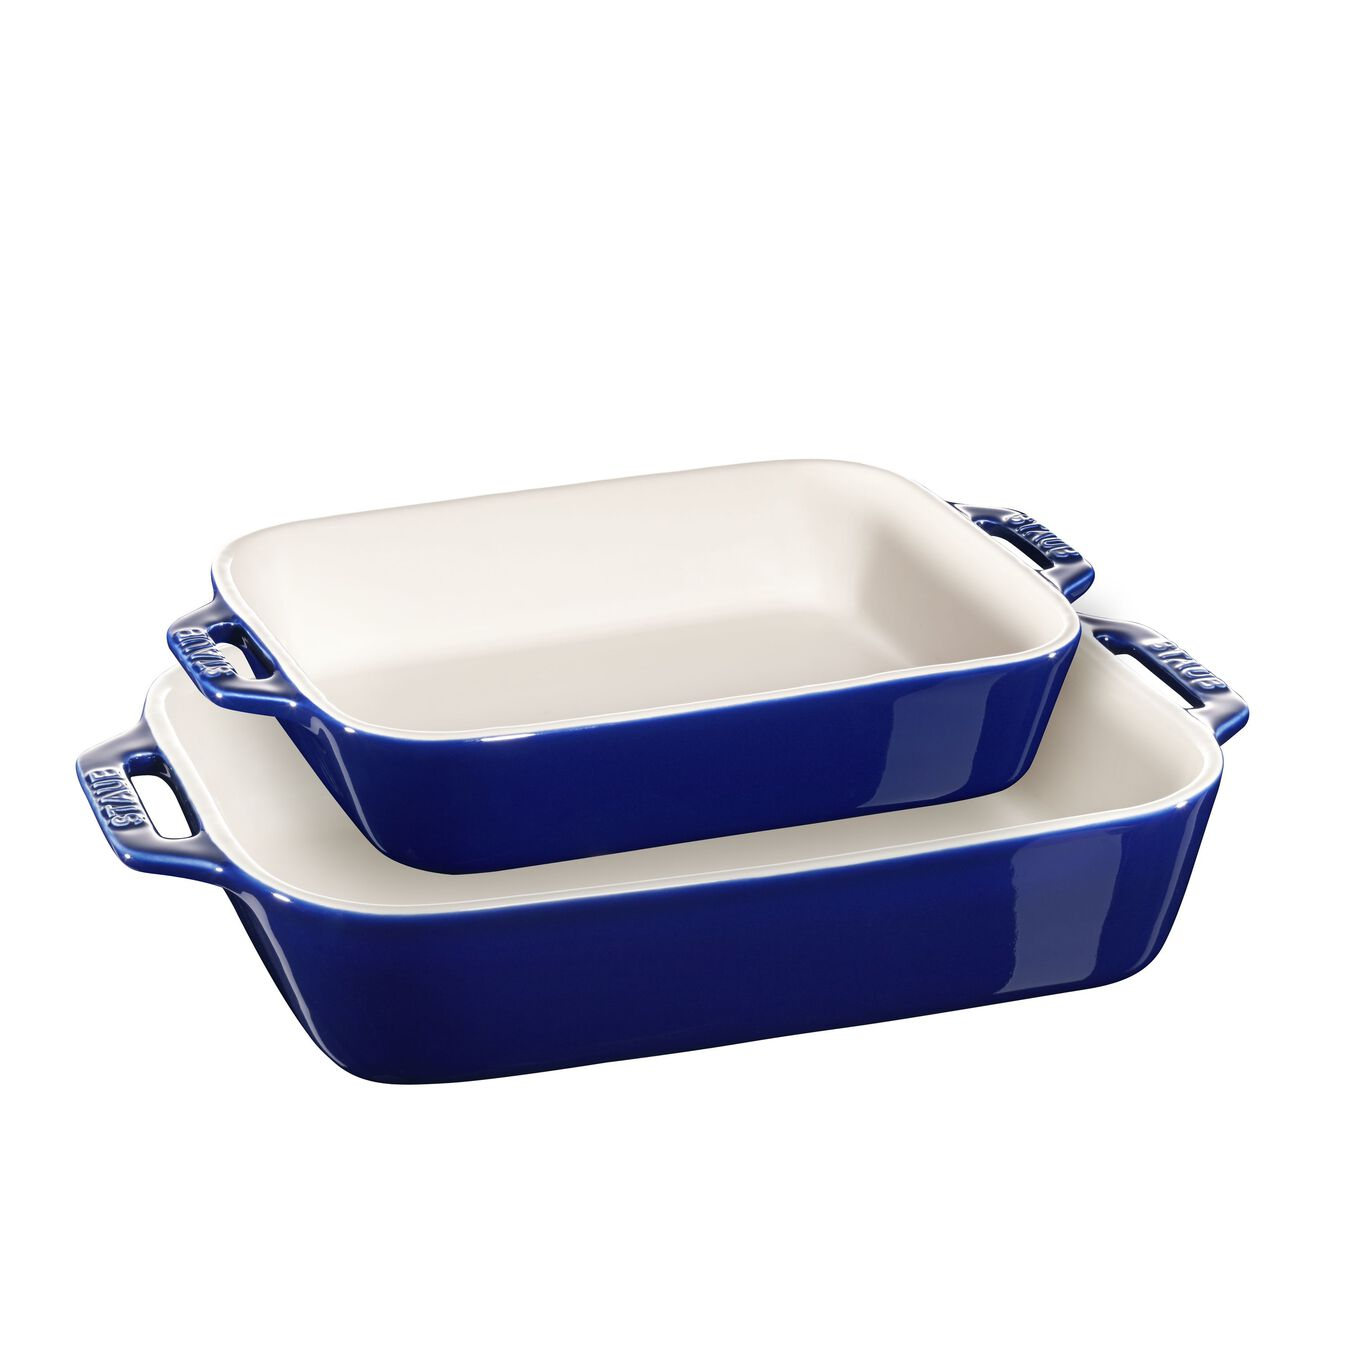 2-pc, Rectangular Baking Dish Set, dark blue,,large 2